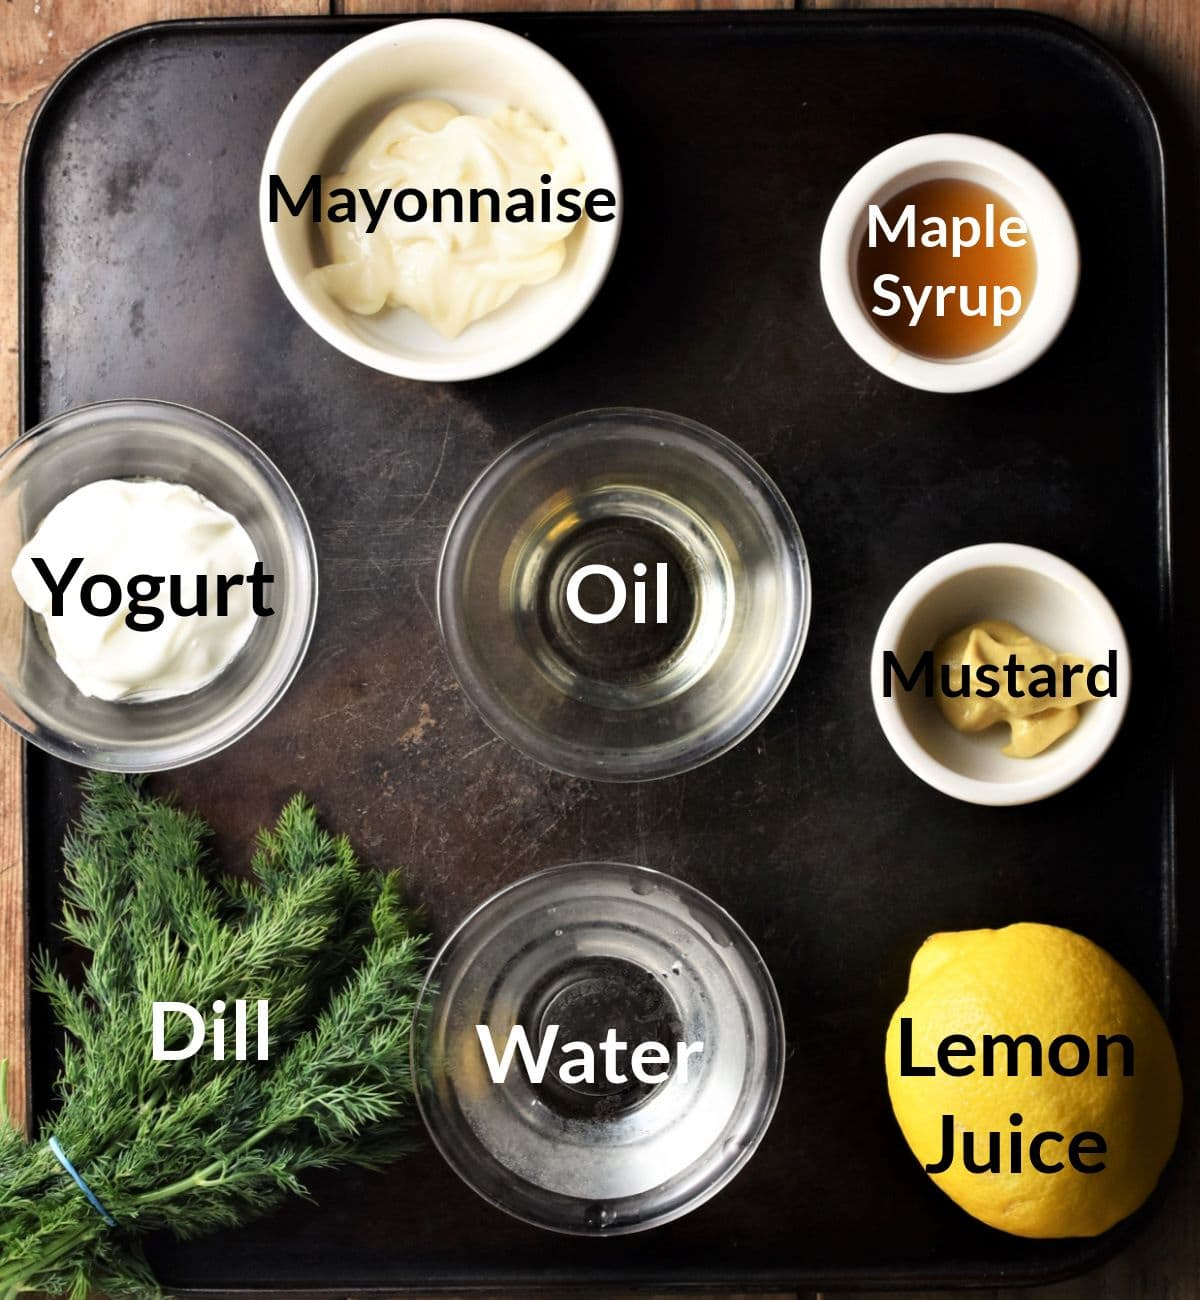 Ingredients for making dill salad dressing.